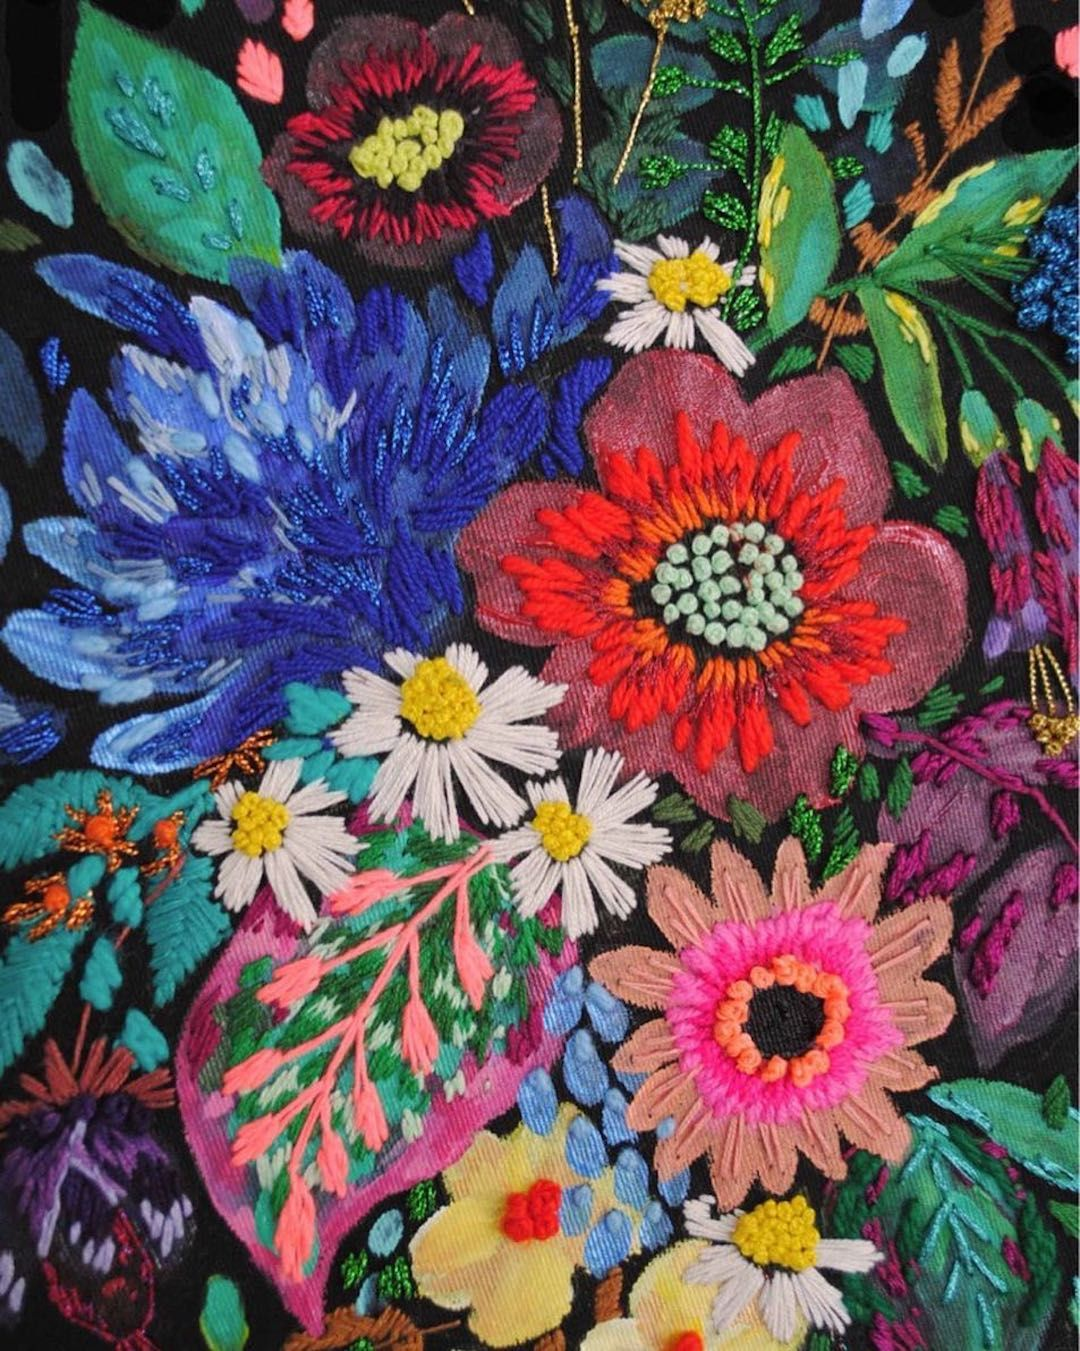 Lush floral art created with a fusion of paint and stitches